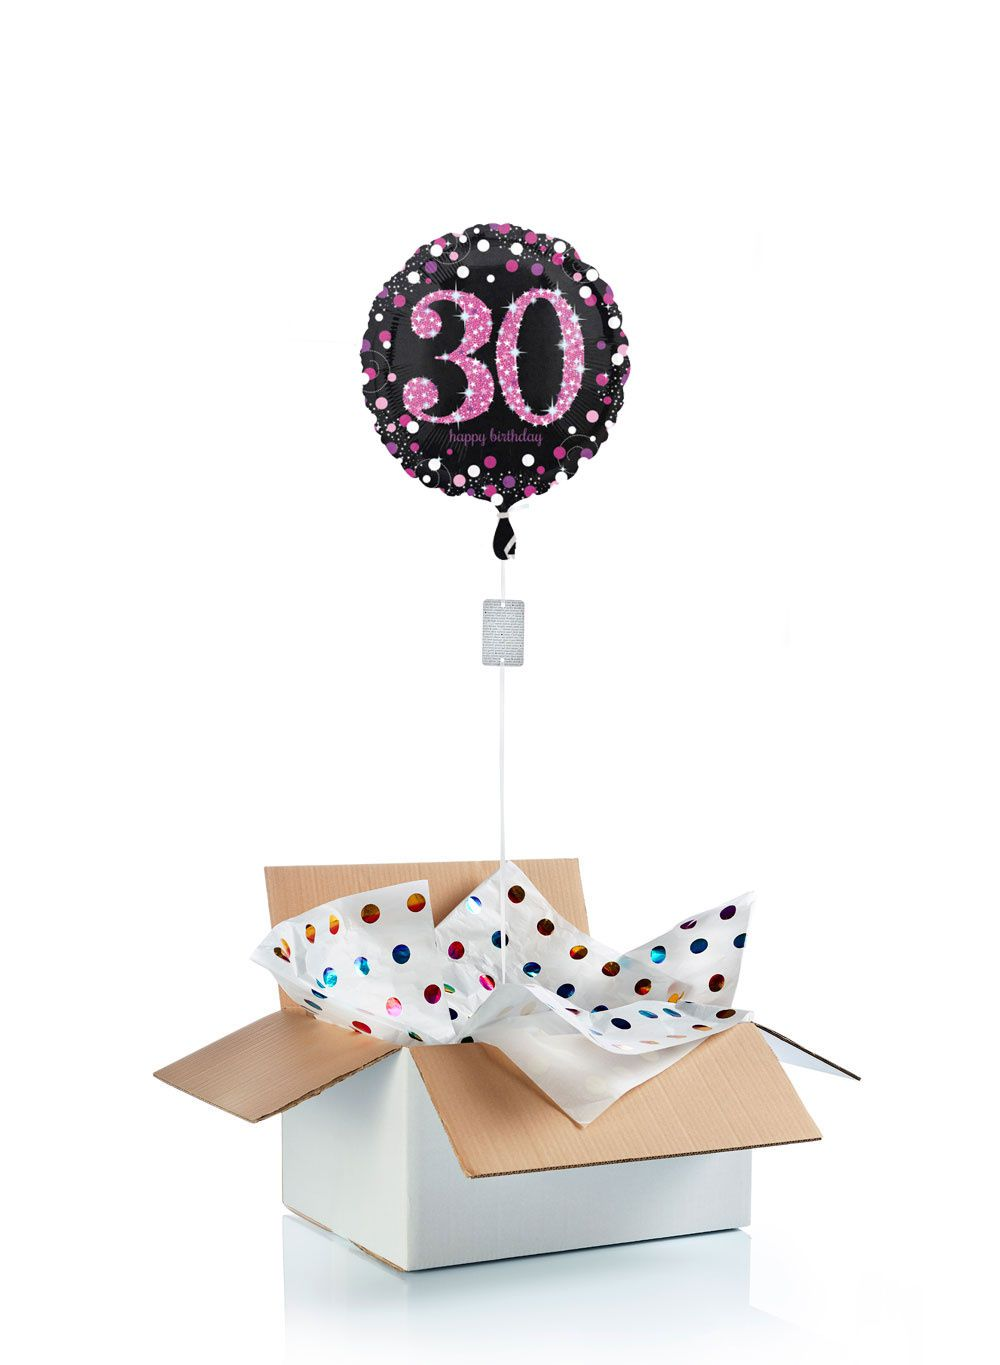 anniversaire des 30 ans citation texte cadeau tshirt anniversaire de 30 ans un site. Black Bedroom Furniture Sets. Home Design Ideas